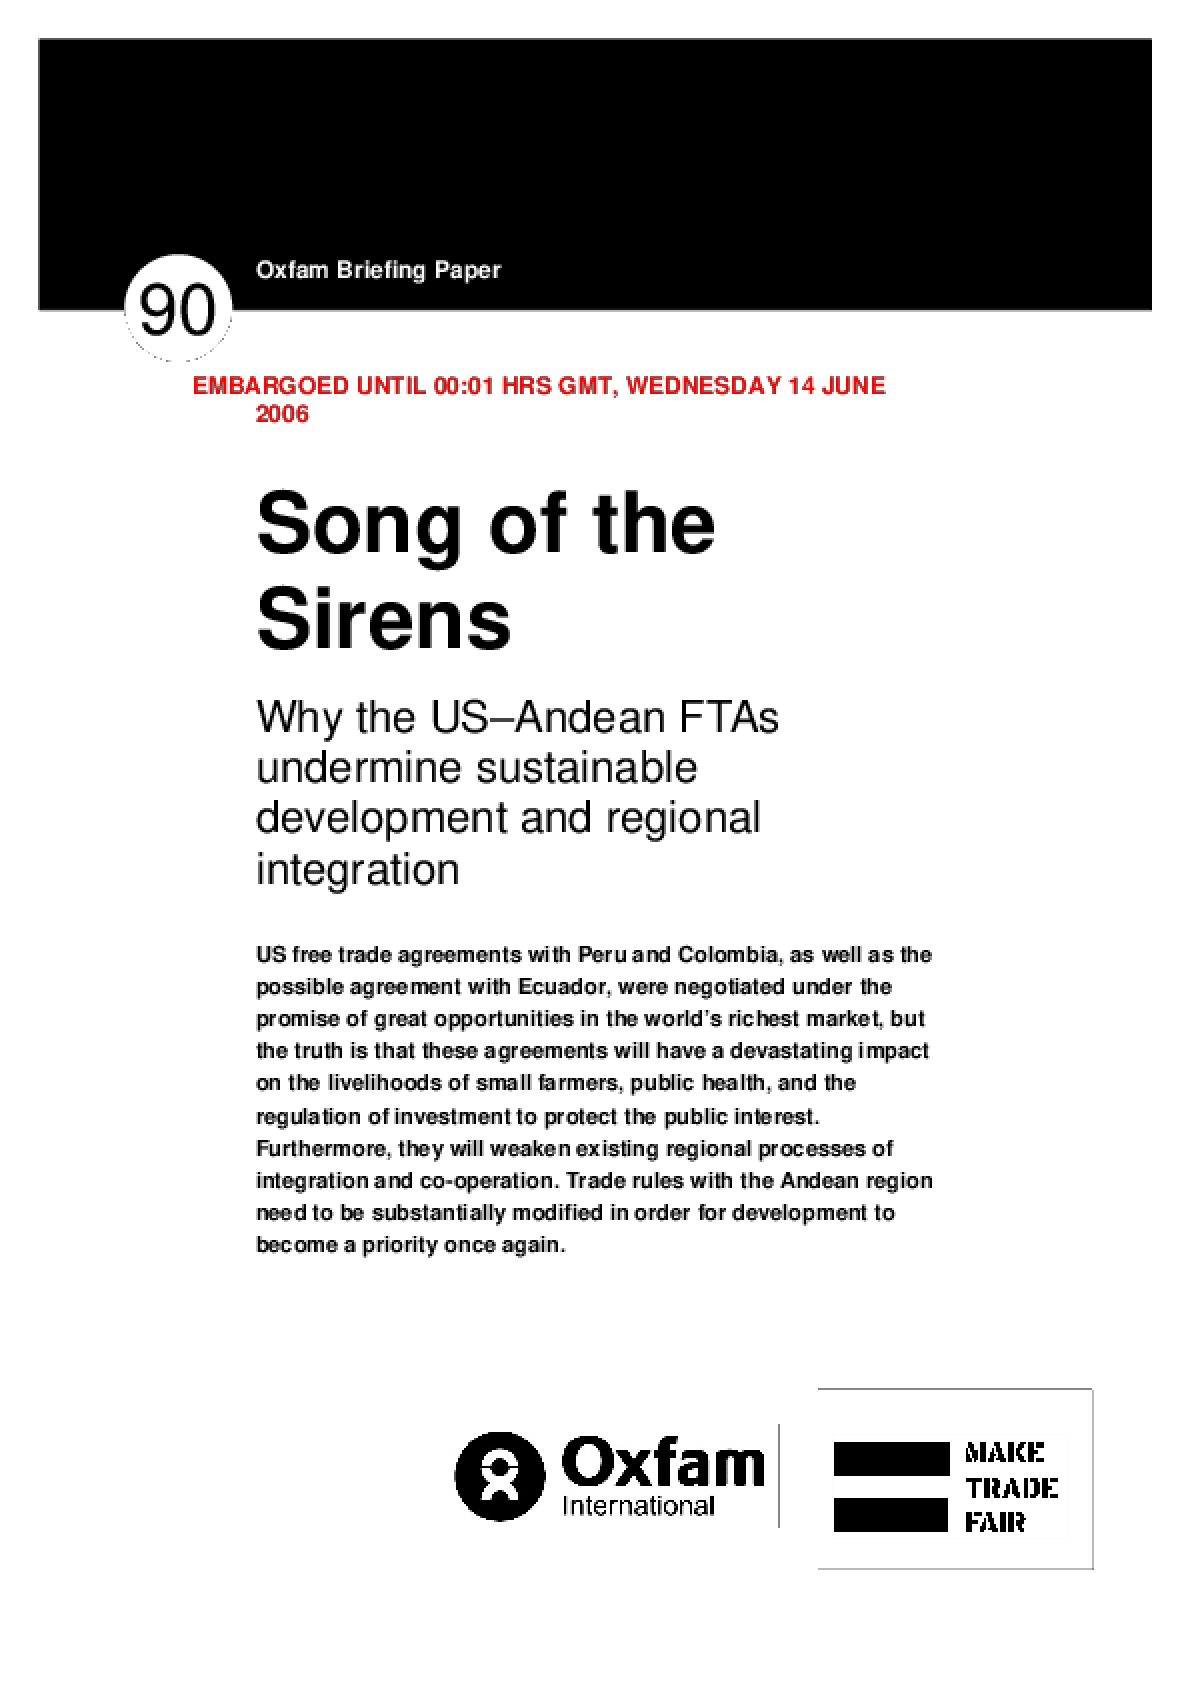 Song of the Sirens: Why the US-Andean FTAs Undermine Sustainable Development and Regional Integration